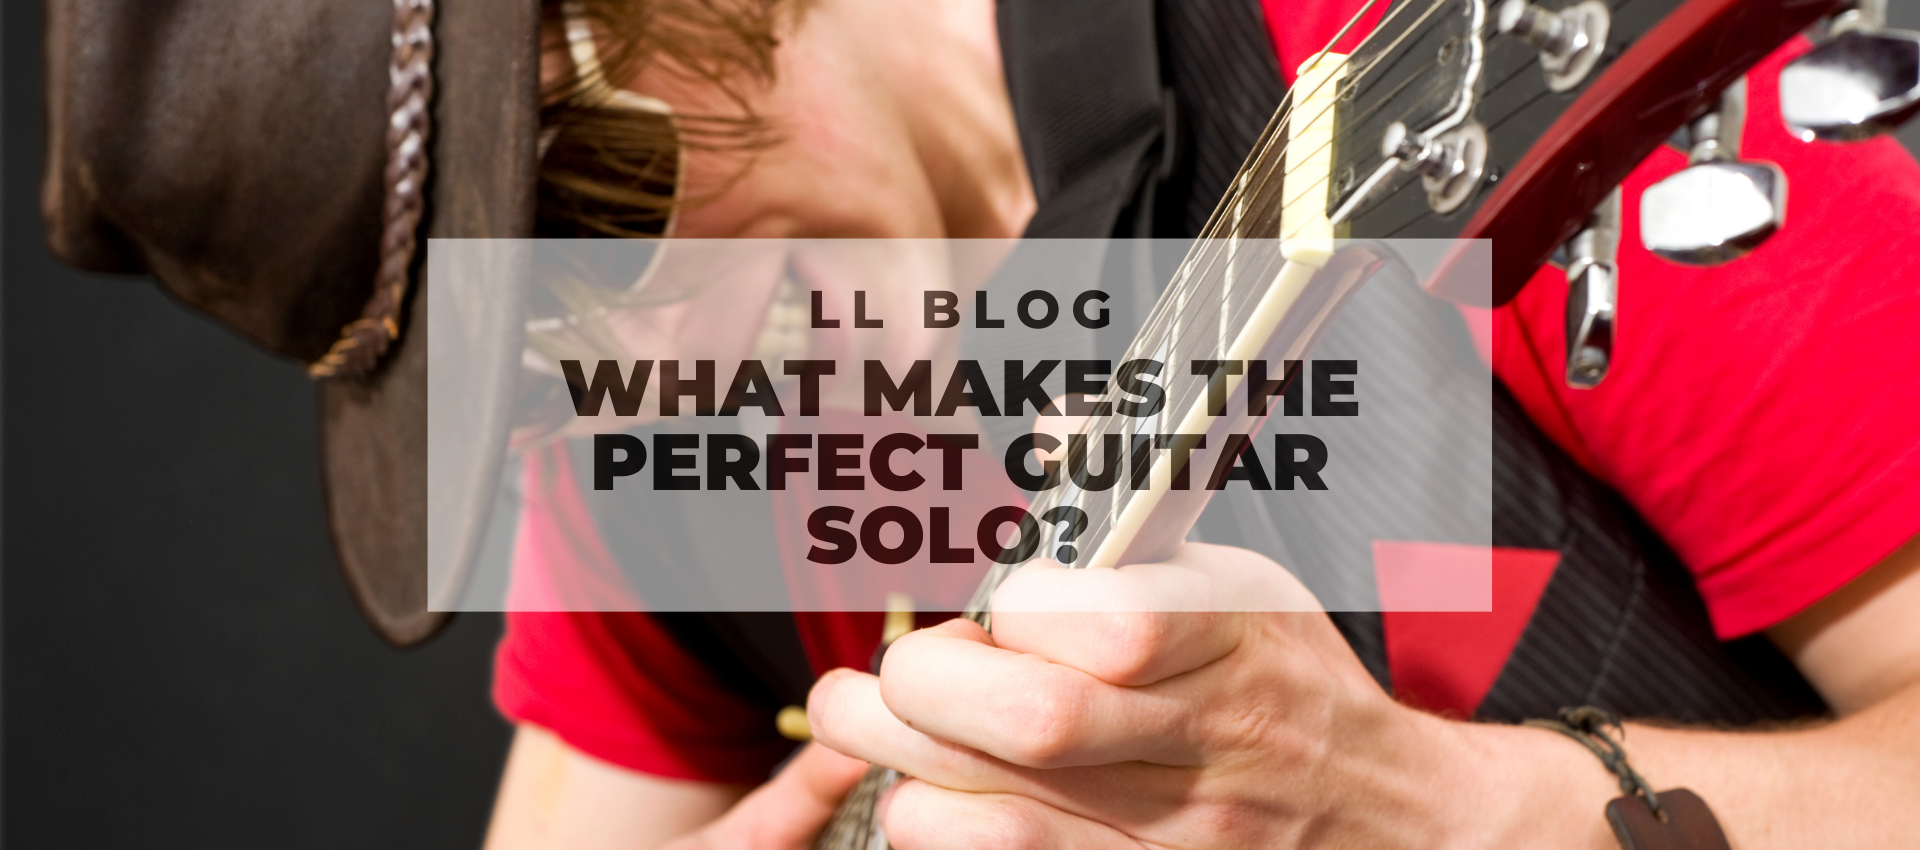 GUITAR MAINTENANCE 4 SIMPLE WAYS TO KEEP YOUR GUITAR PLAYING FIT 11